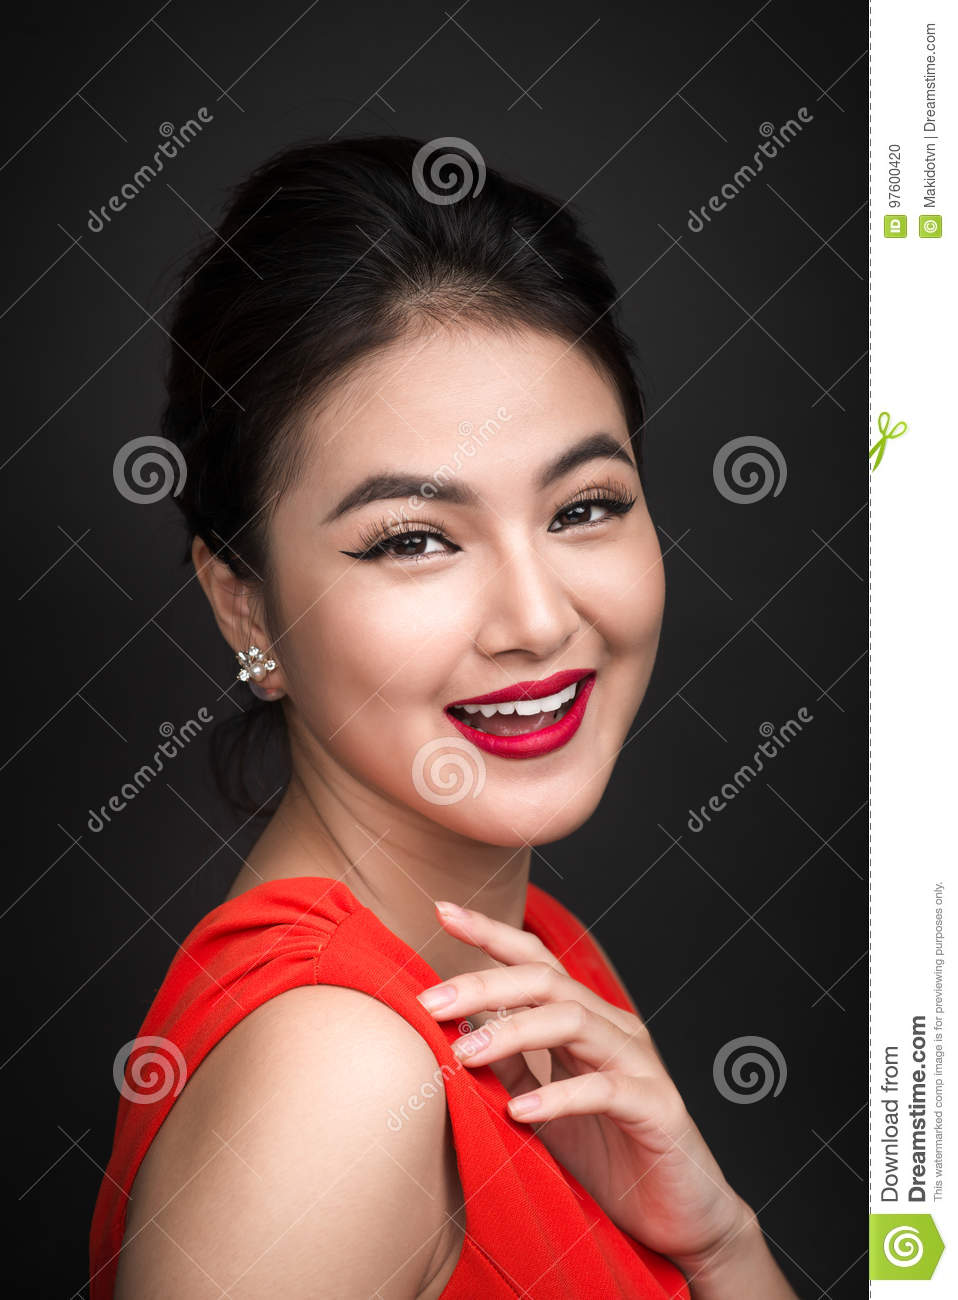 Closeup of beautiful girl with bright makeup and red lips.